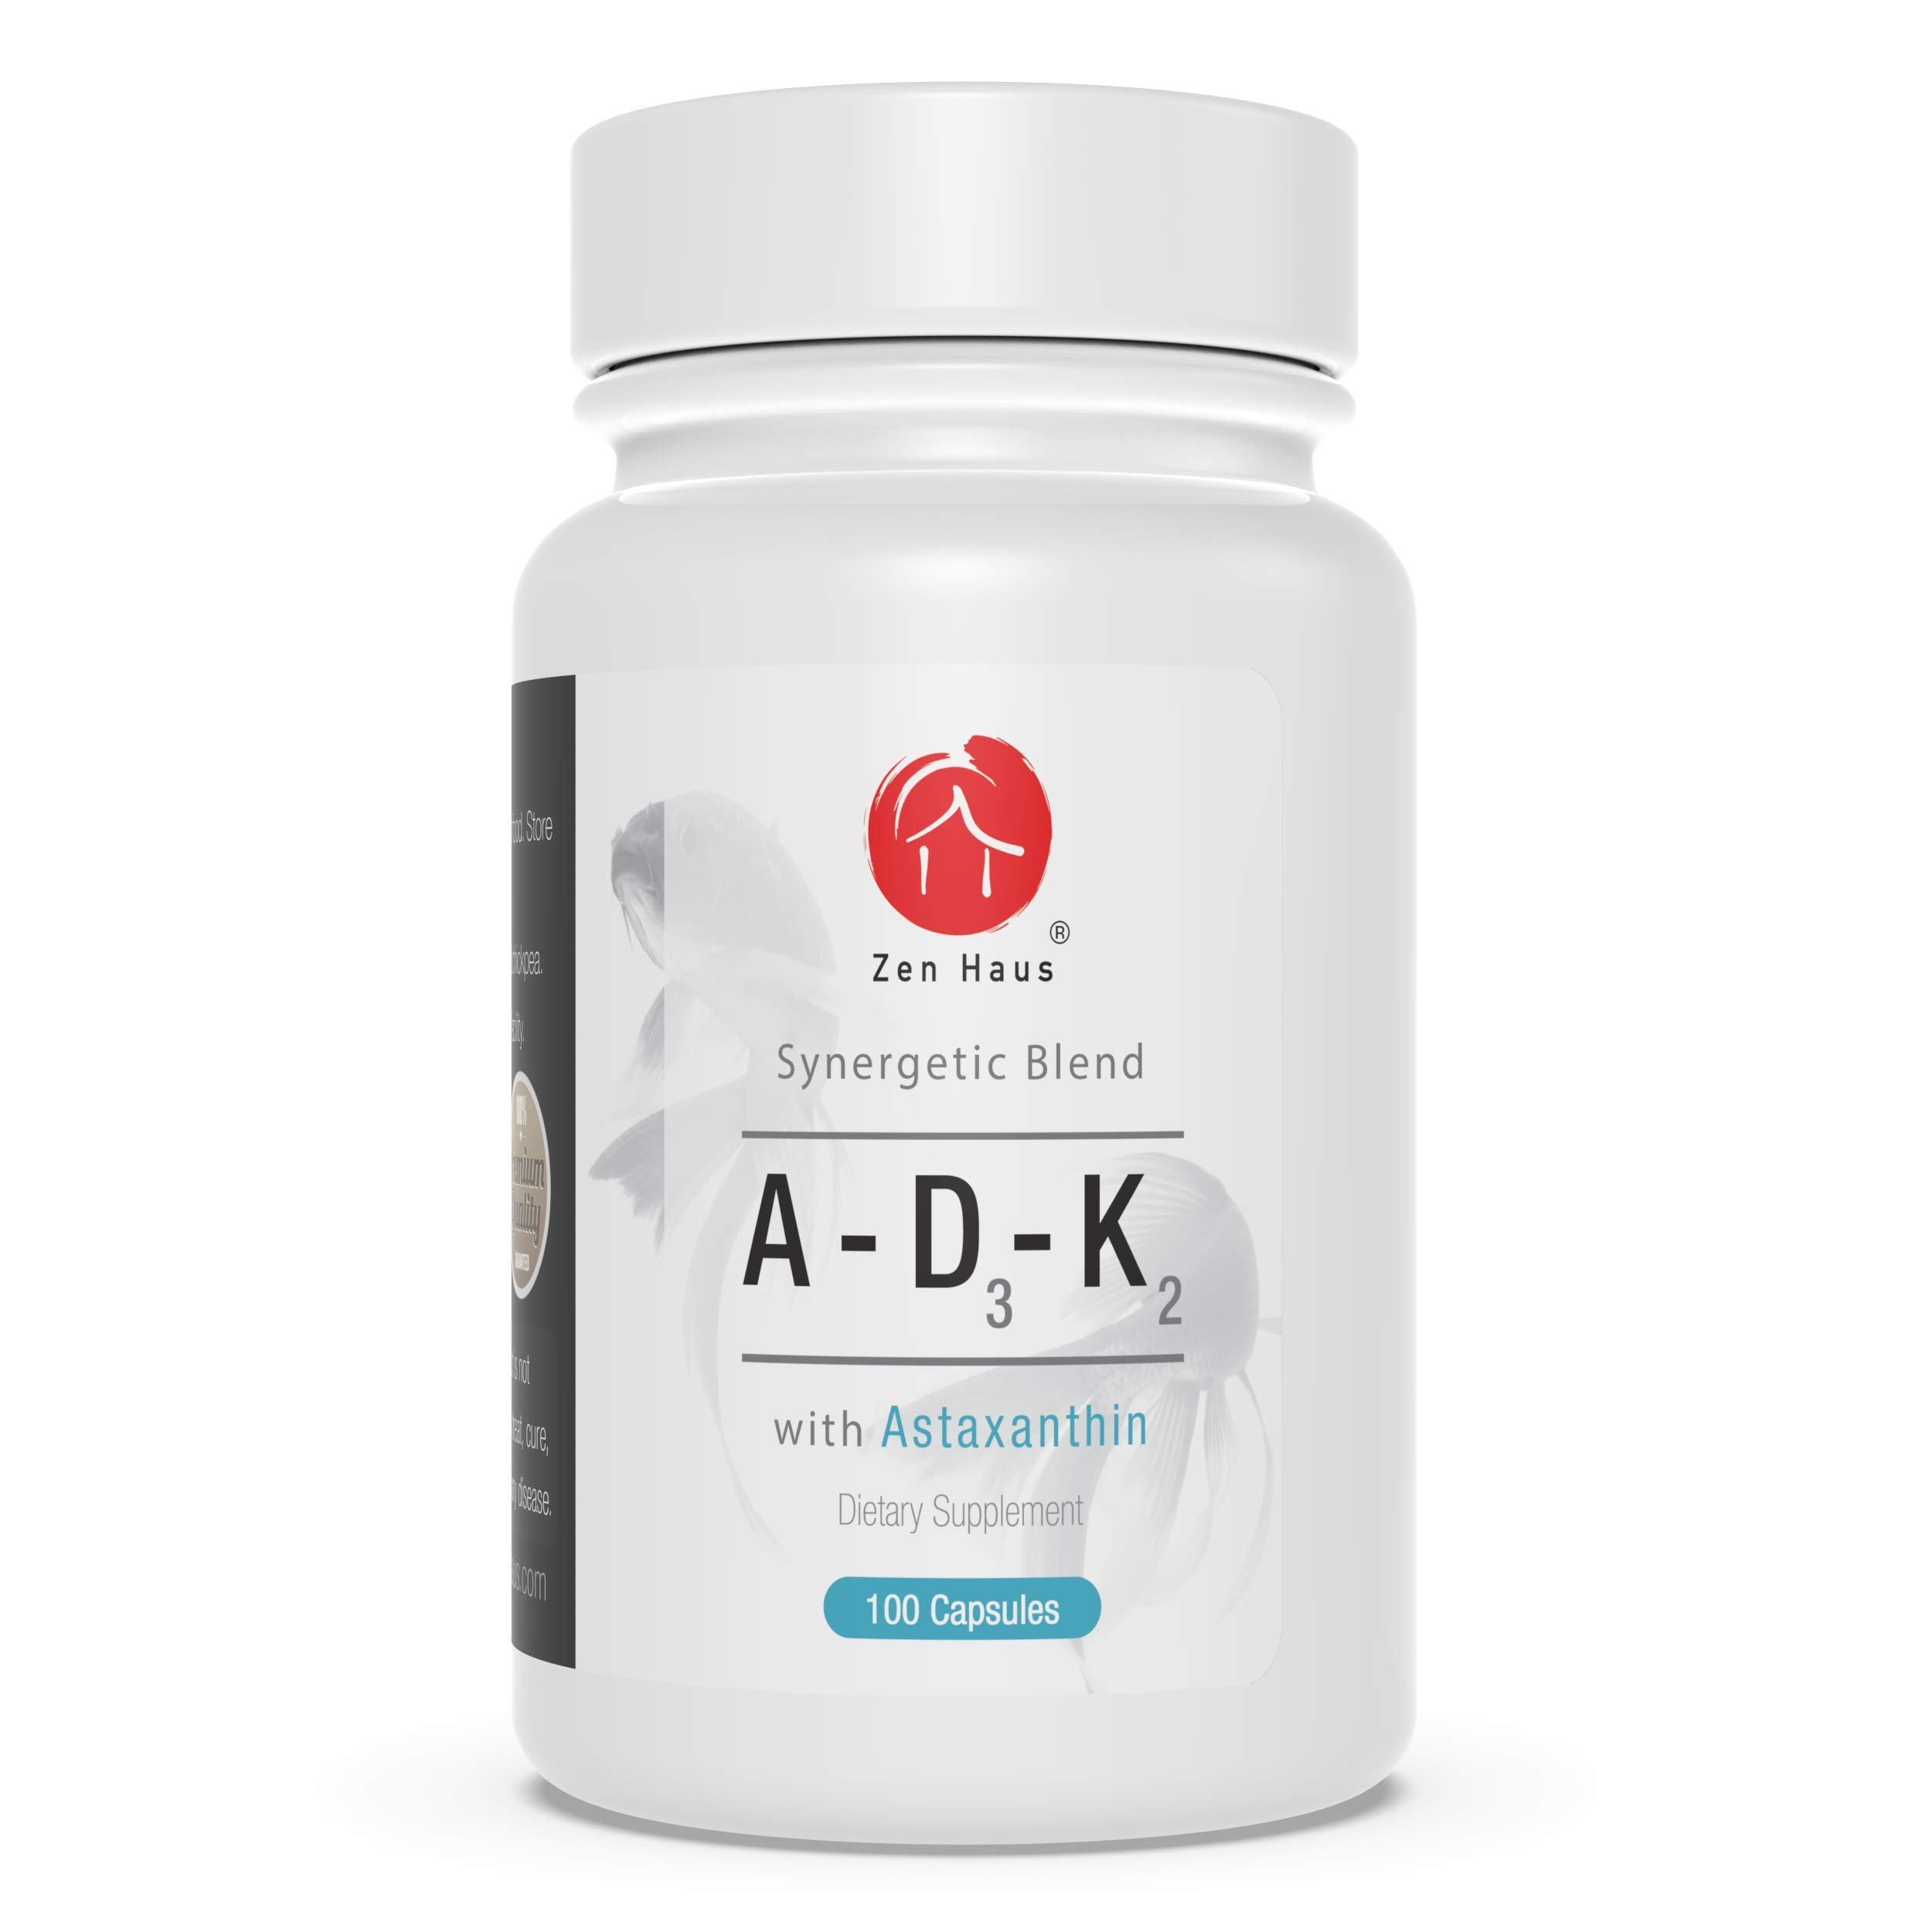 Zen Haus ADK with Vitamins A, D3 and K2 (Non-Soy) with Astaxanthin - Supplement for Vision, Strong Bones and Teeth, and Immune System Support - D3 Complex with Antioxidants